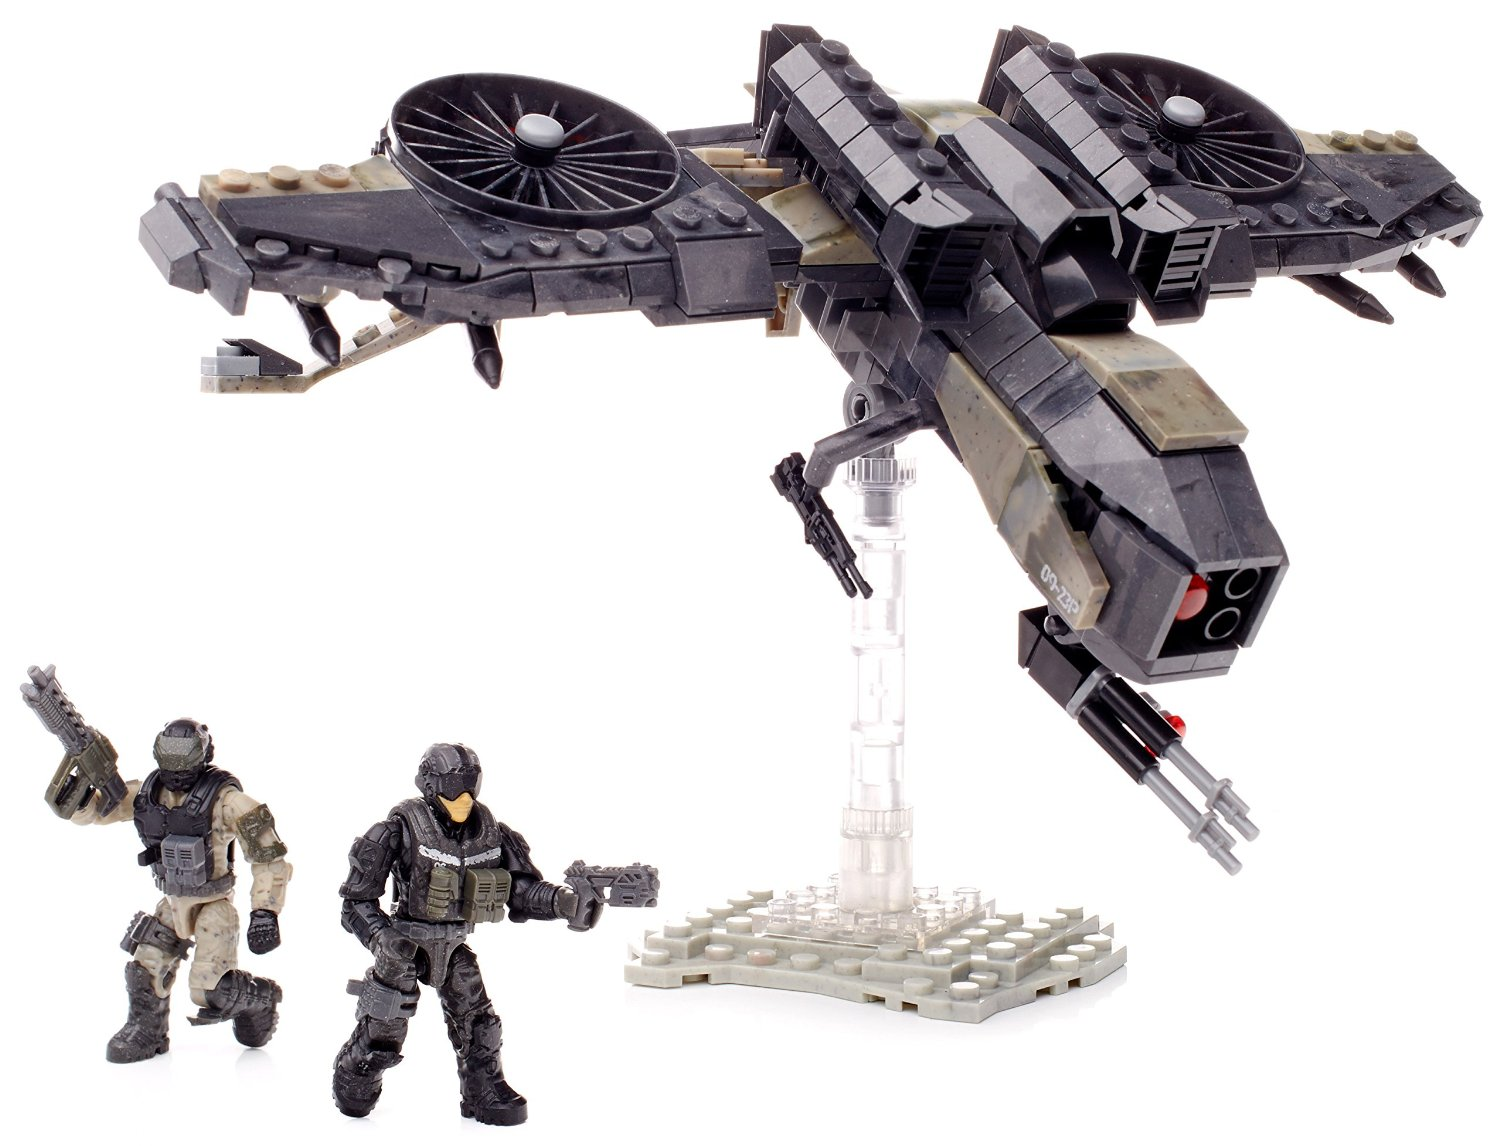 build a drone aircraft with New Call Of Duty Wraith Attack Mega Bloks Now Available on The Top Windows Store Games You Should Download likewise Man Charged Allegedly Flying Drone Over Football Grounds Anfield Emirates Stadium also 1689 also Iran Captures Foreign Drone Trying Enter Nations Airspace additionally Airbus Teams Up To Develop Anti Drone Tech.